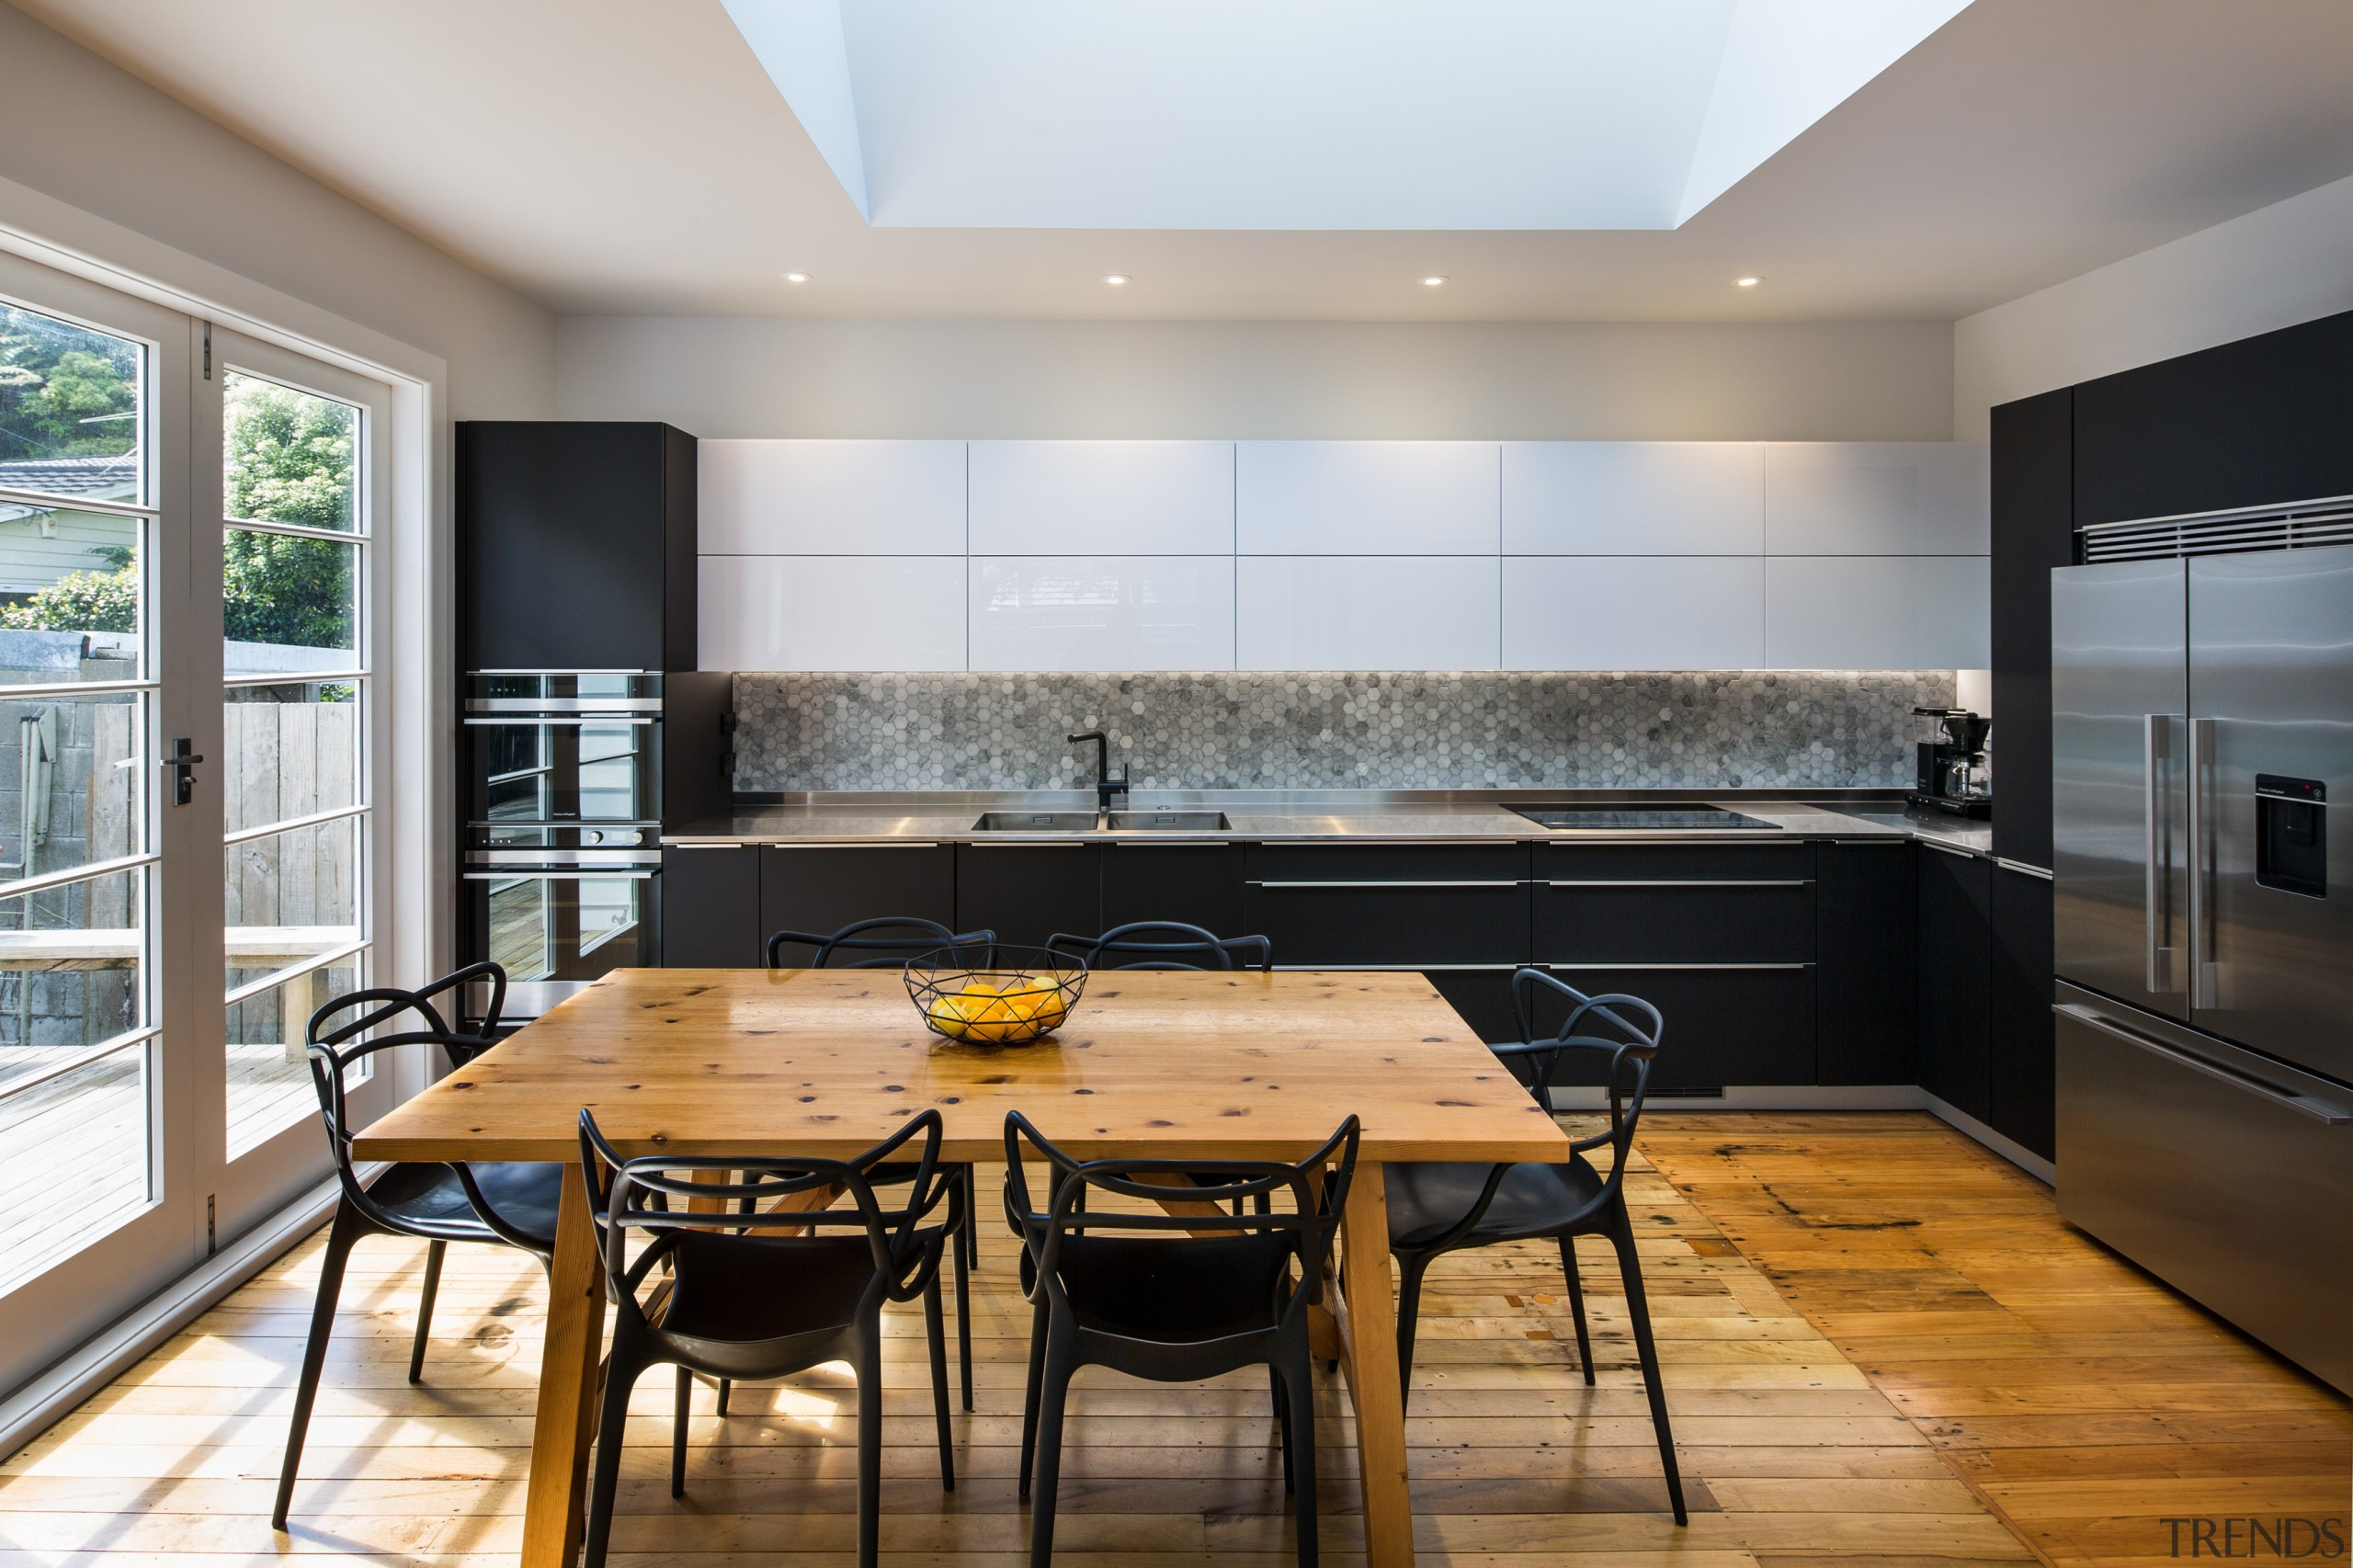 A substantial skylight sits above the kitchen - countertop, interior design, kitchen, real estate, room, gray